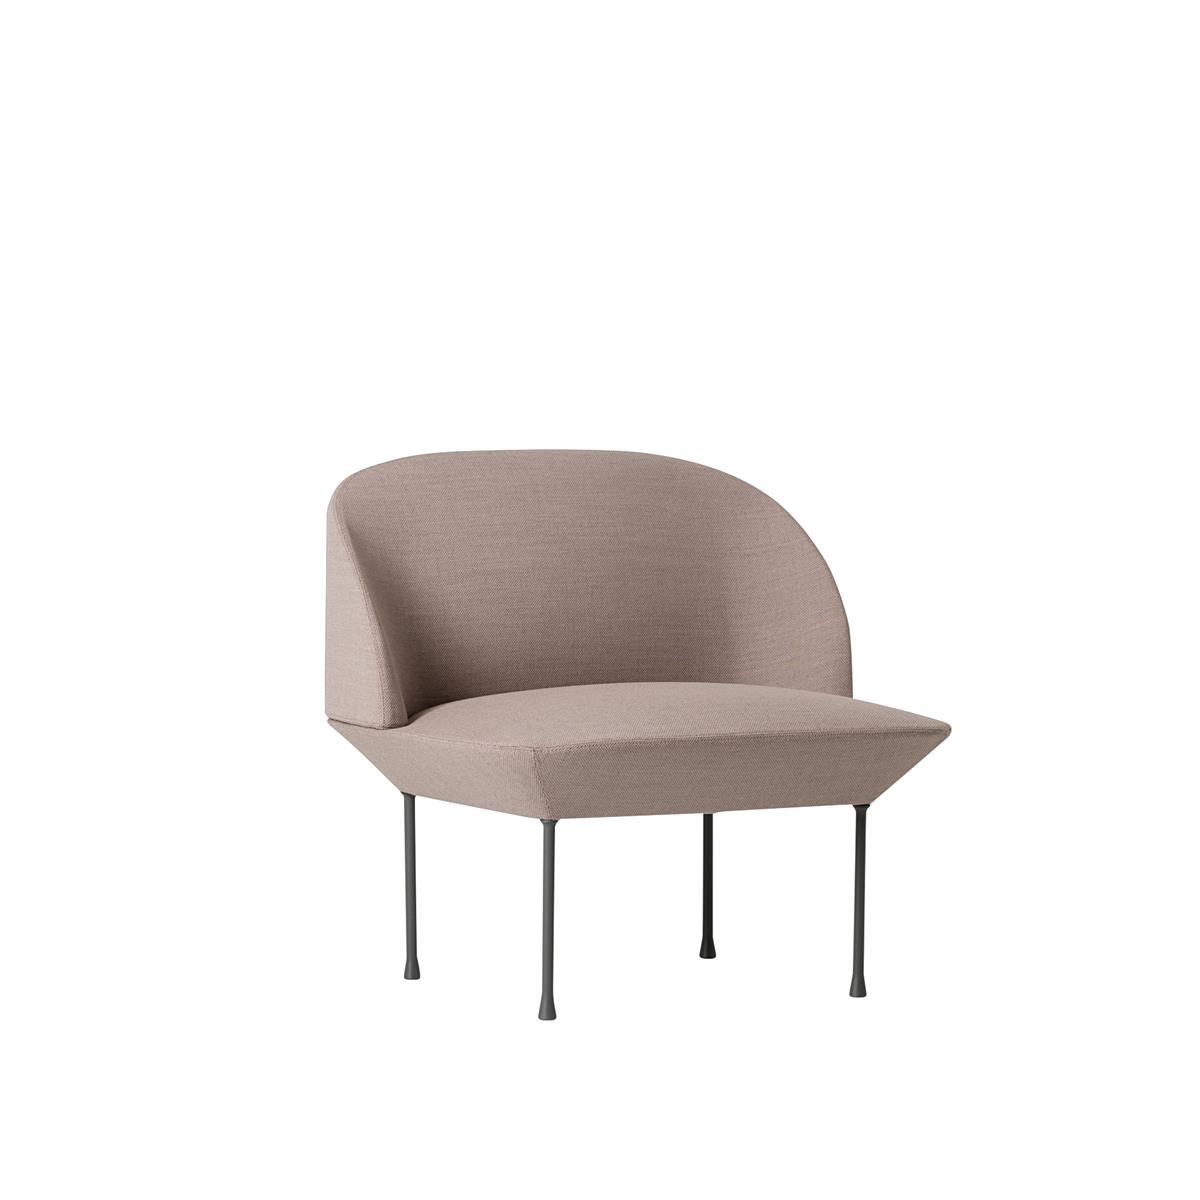 Oslo Lounge Chair - Fiord 551 & Light Grey Legs